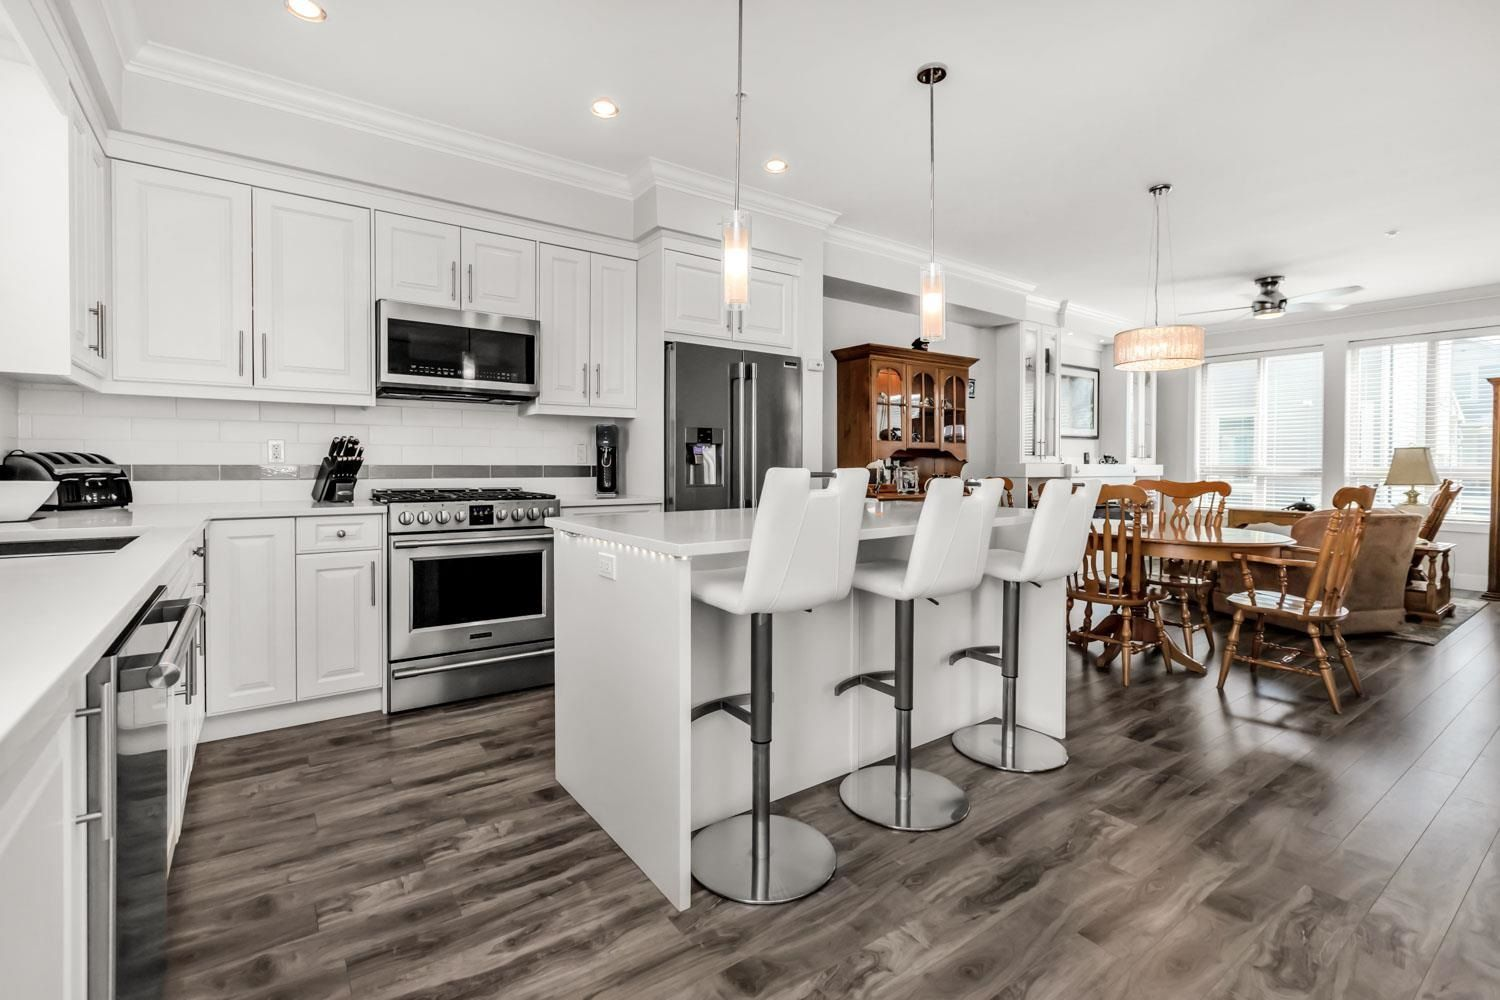 Photo 4: Photos: 98 19913 70 Avenue in Langley: Willoughby Heights Townhouse for sale : MLS®# R2606437